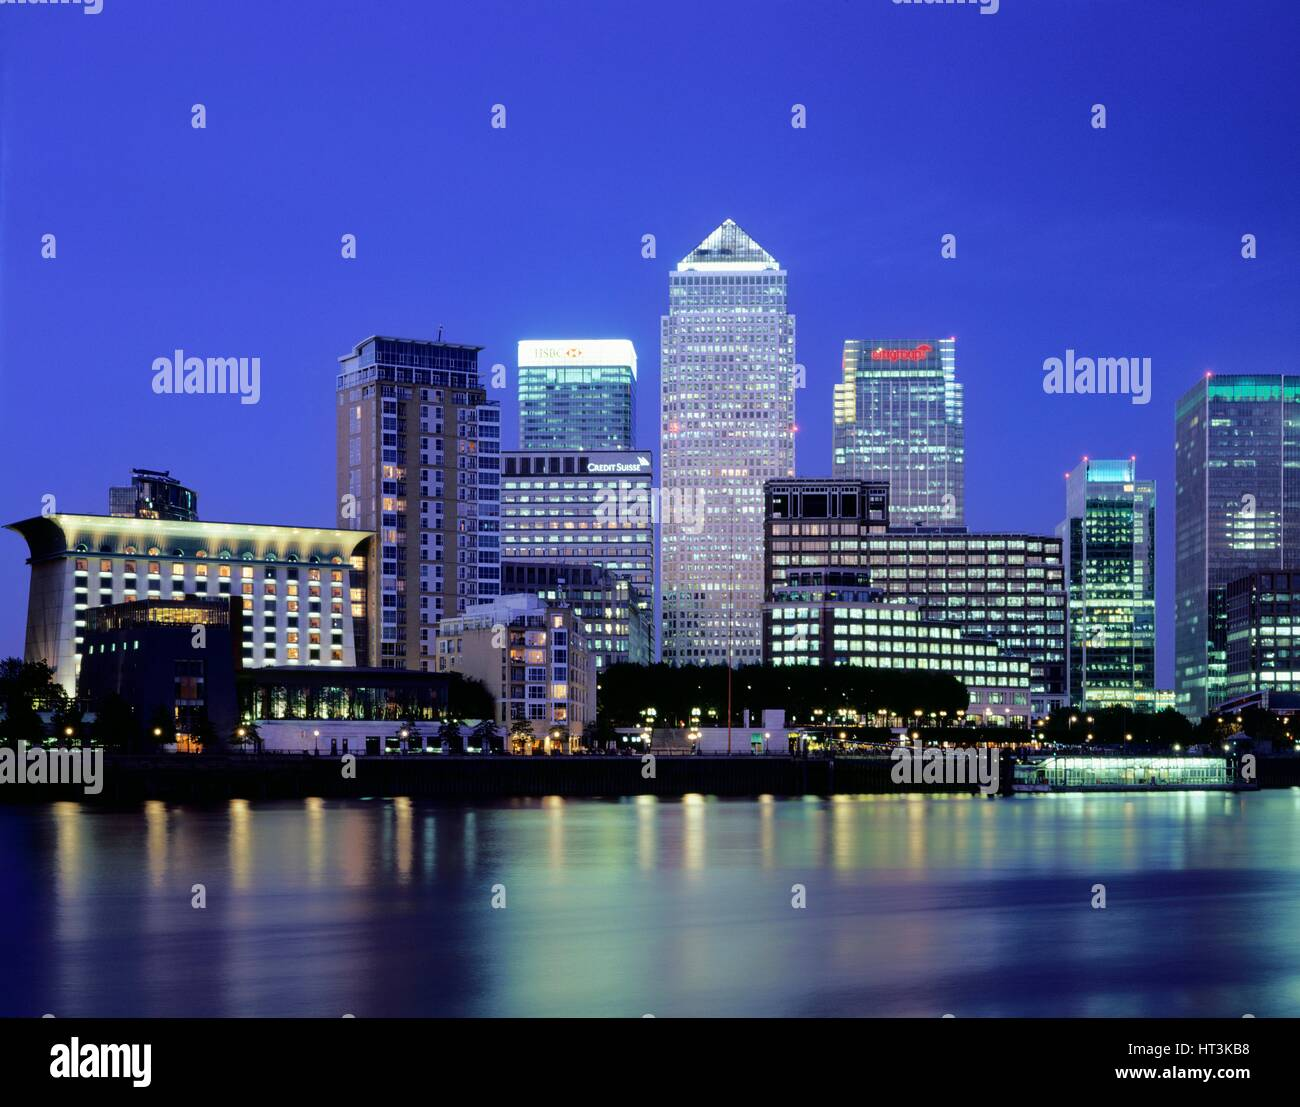 Canary Wharf, c1990-2010. Artist: Unknown. - Stock Image